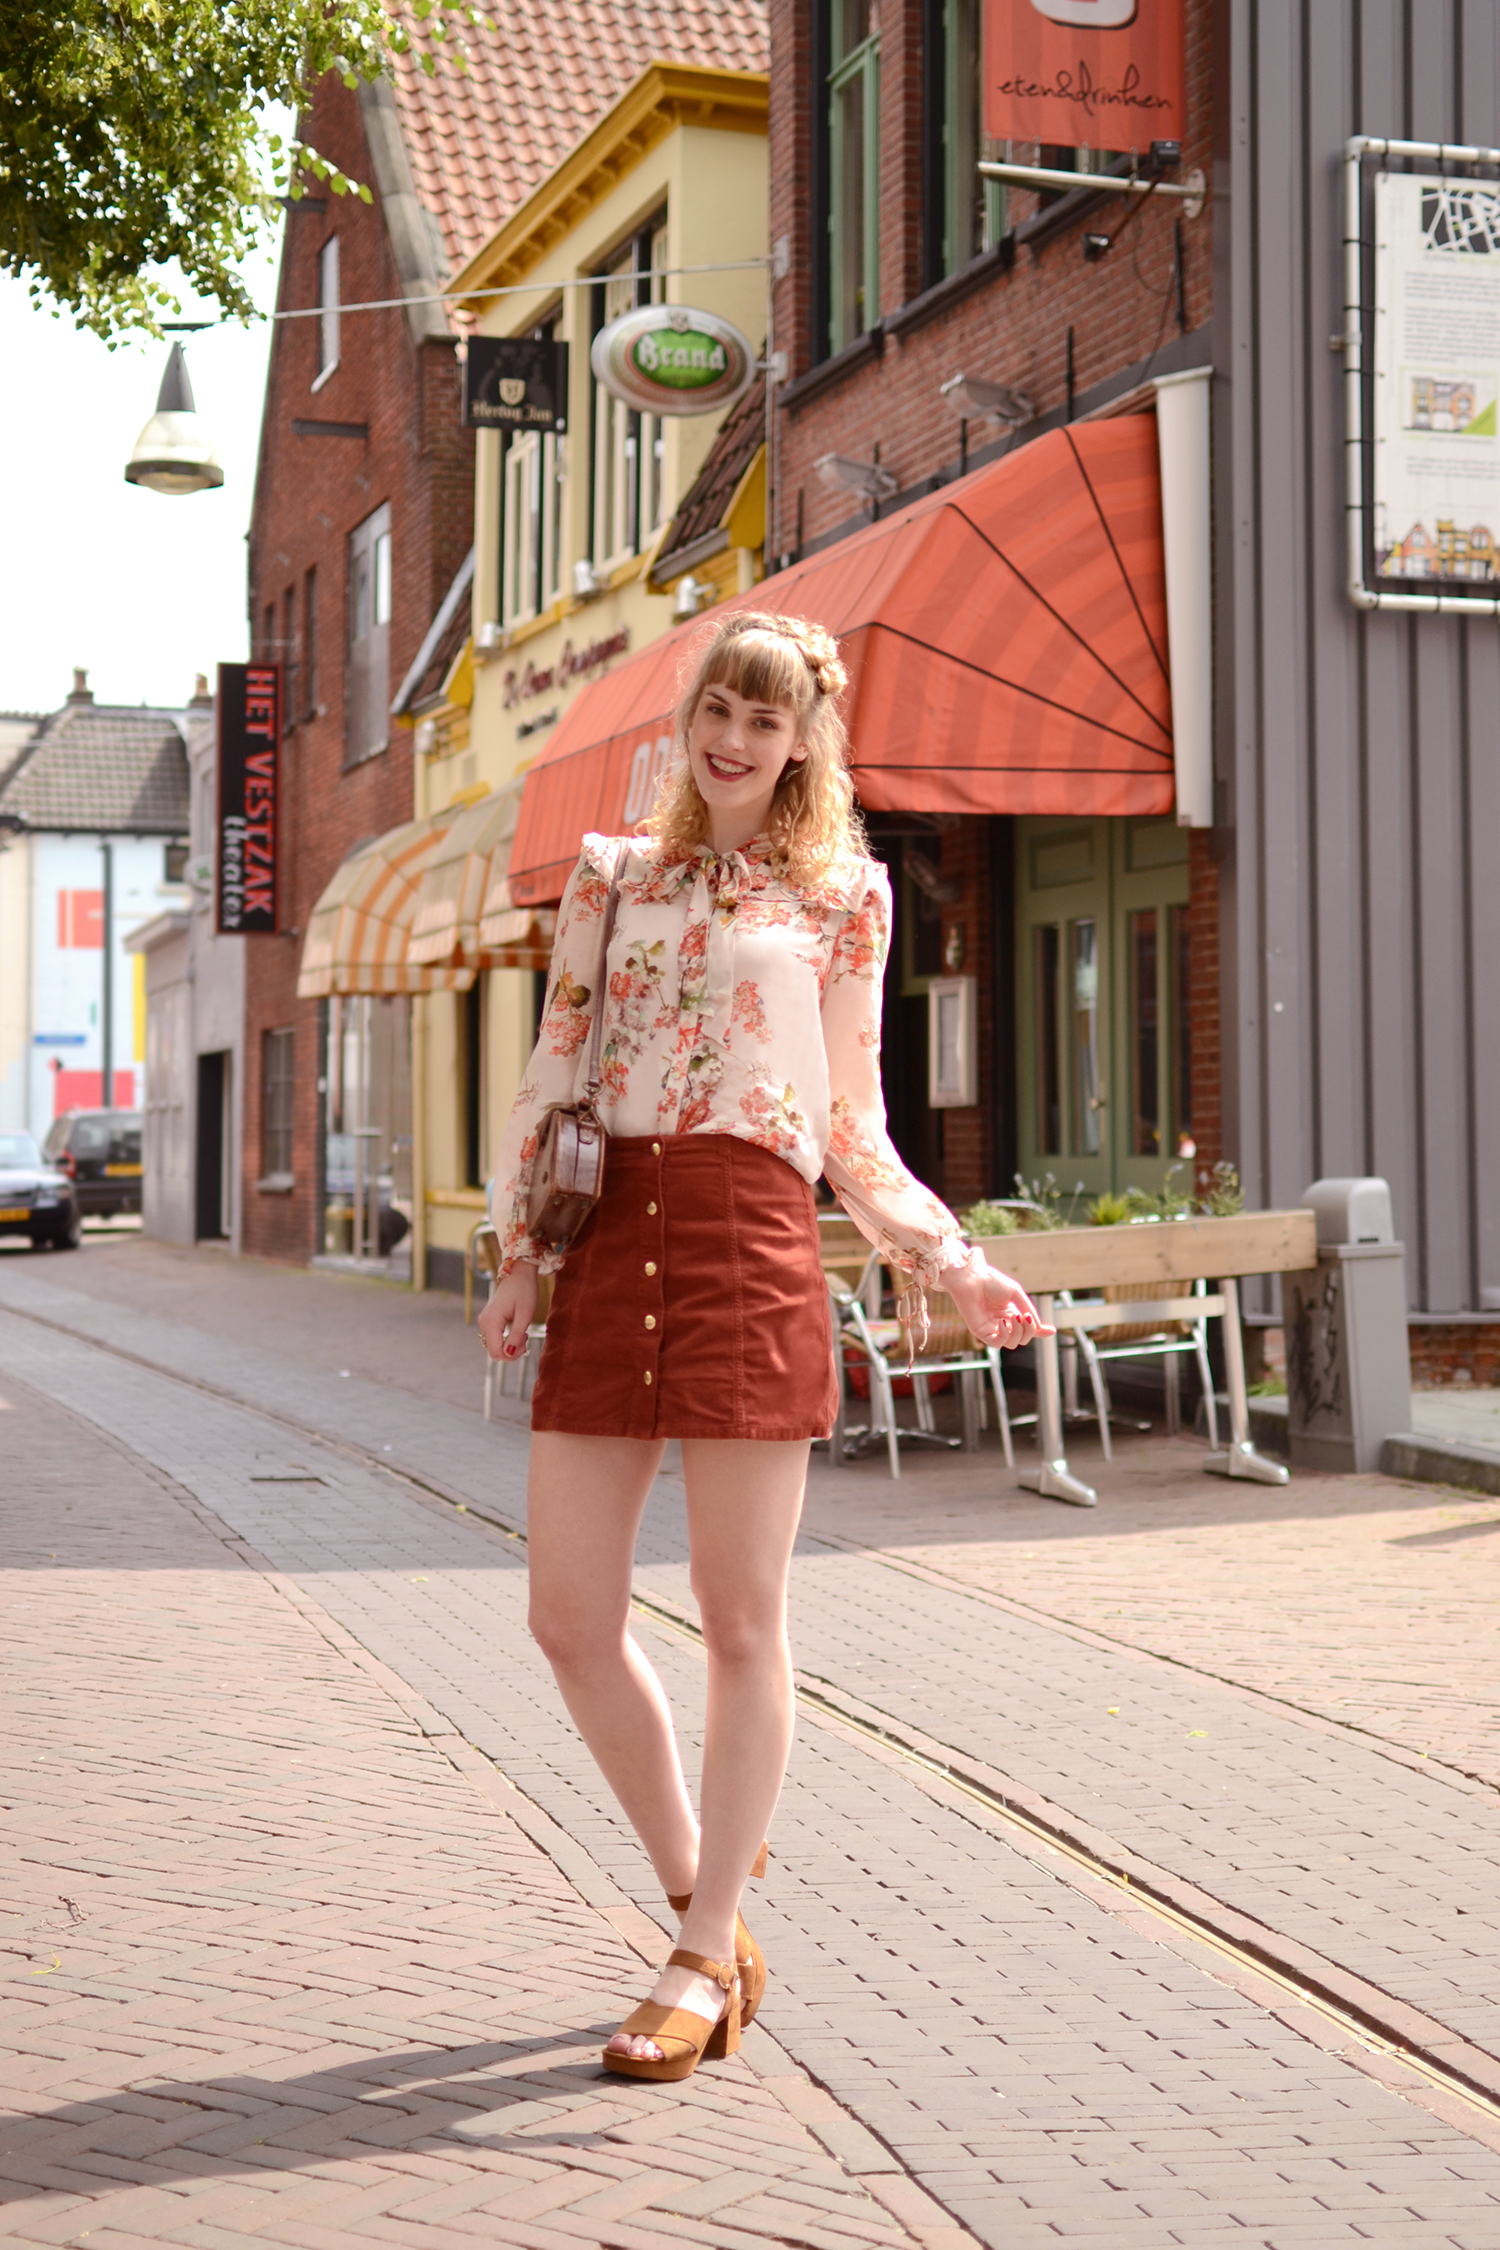 Retromantisch retro romantic fashion blog floral blouse nude Zara vintage bag Topshop skirt button corduroy ring style orange copper gold sandals brown heeled heels block heel